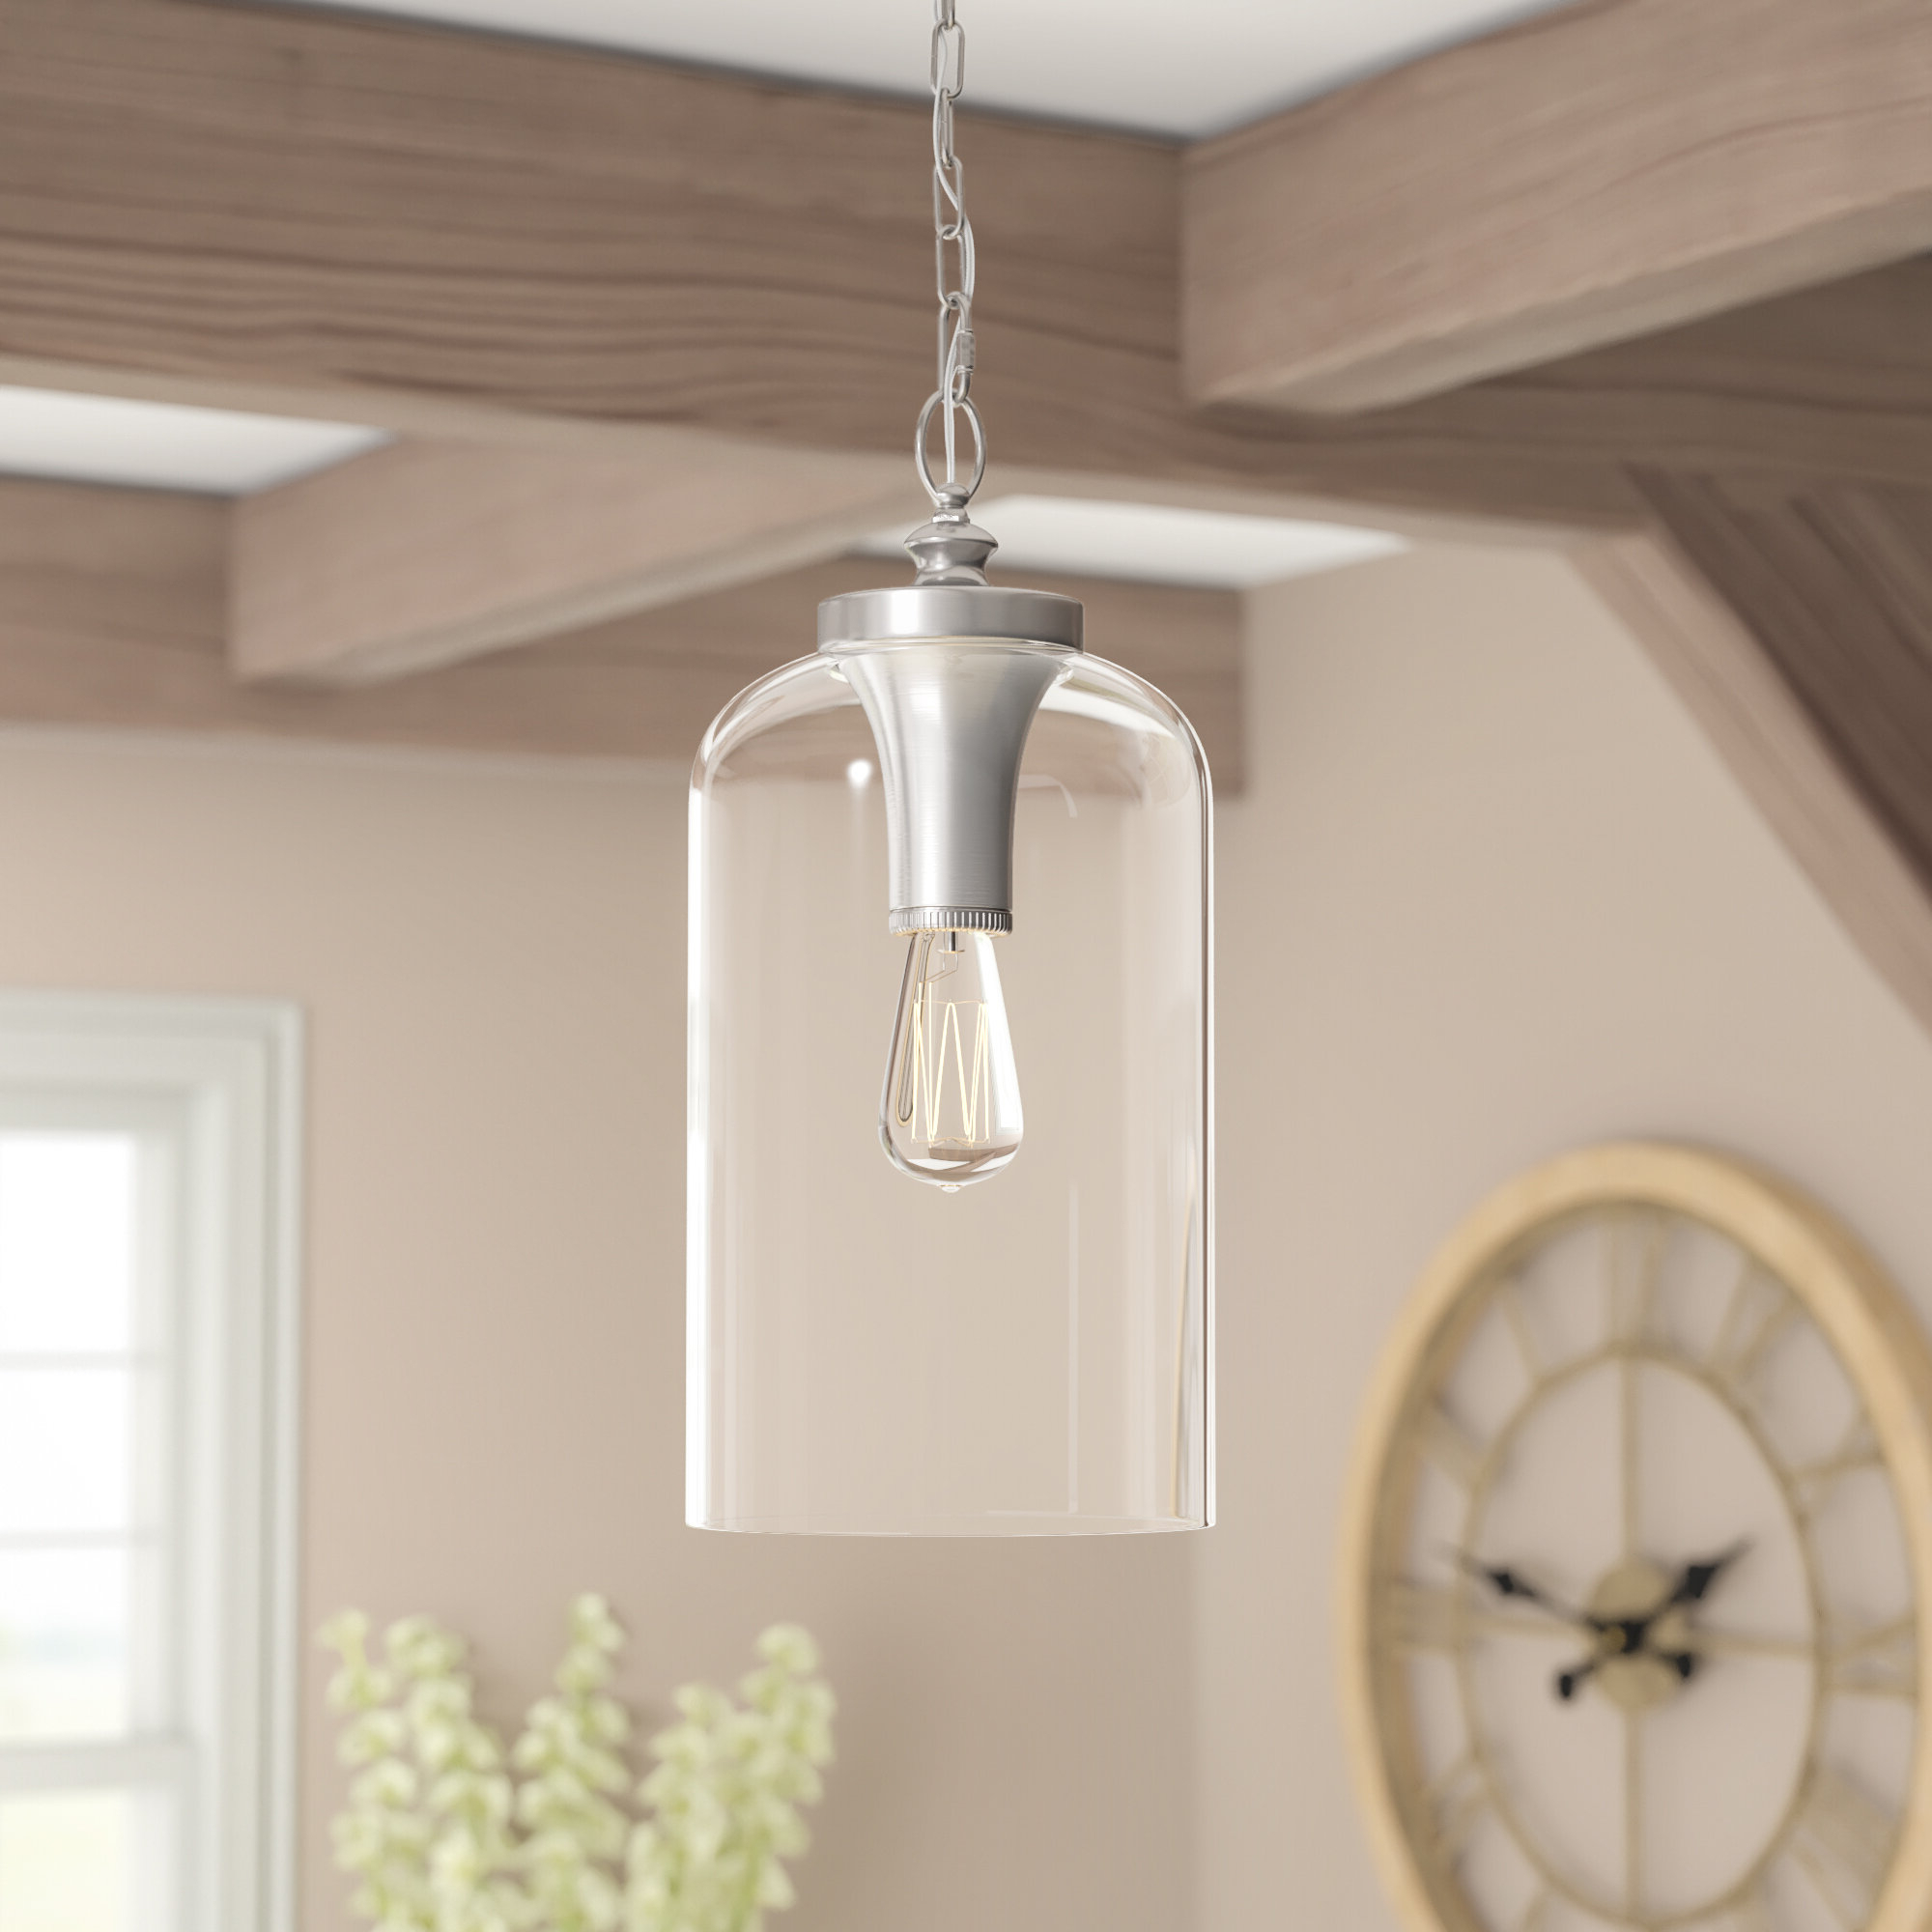 Nolan 1 Light Single Cylinder Pendant Intended For Well Known Nolan 1 Light Lantern Chandeliers (View 14 of 25)